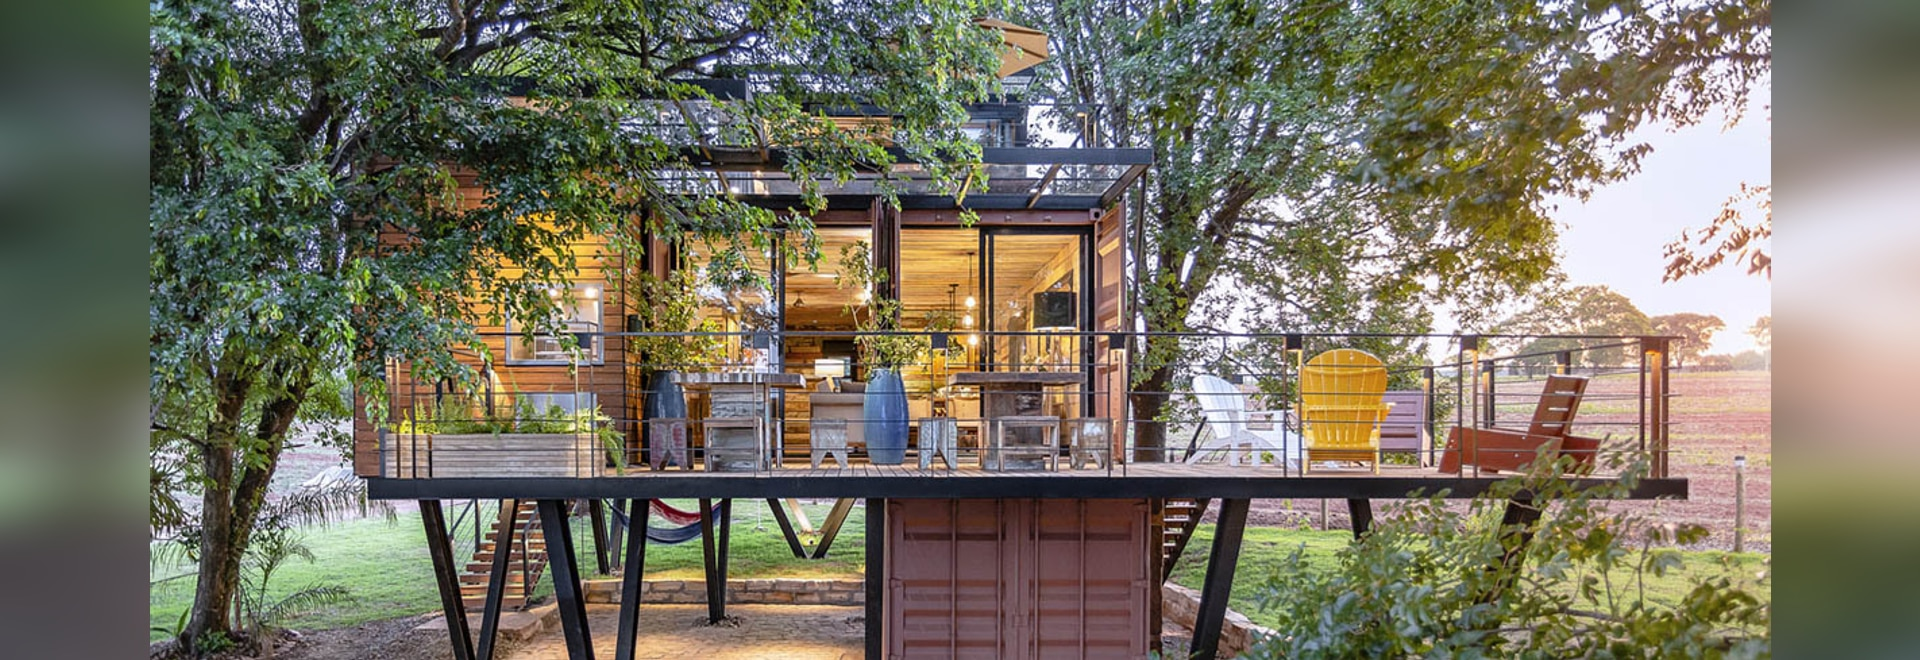 Casa Container Marília Built A Self-Sustained Container House Raised On Metal Pillars In Brazil